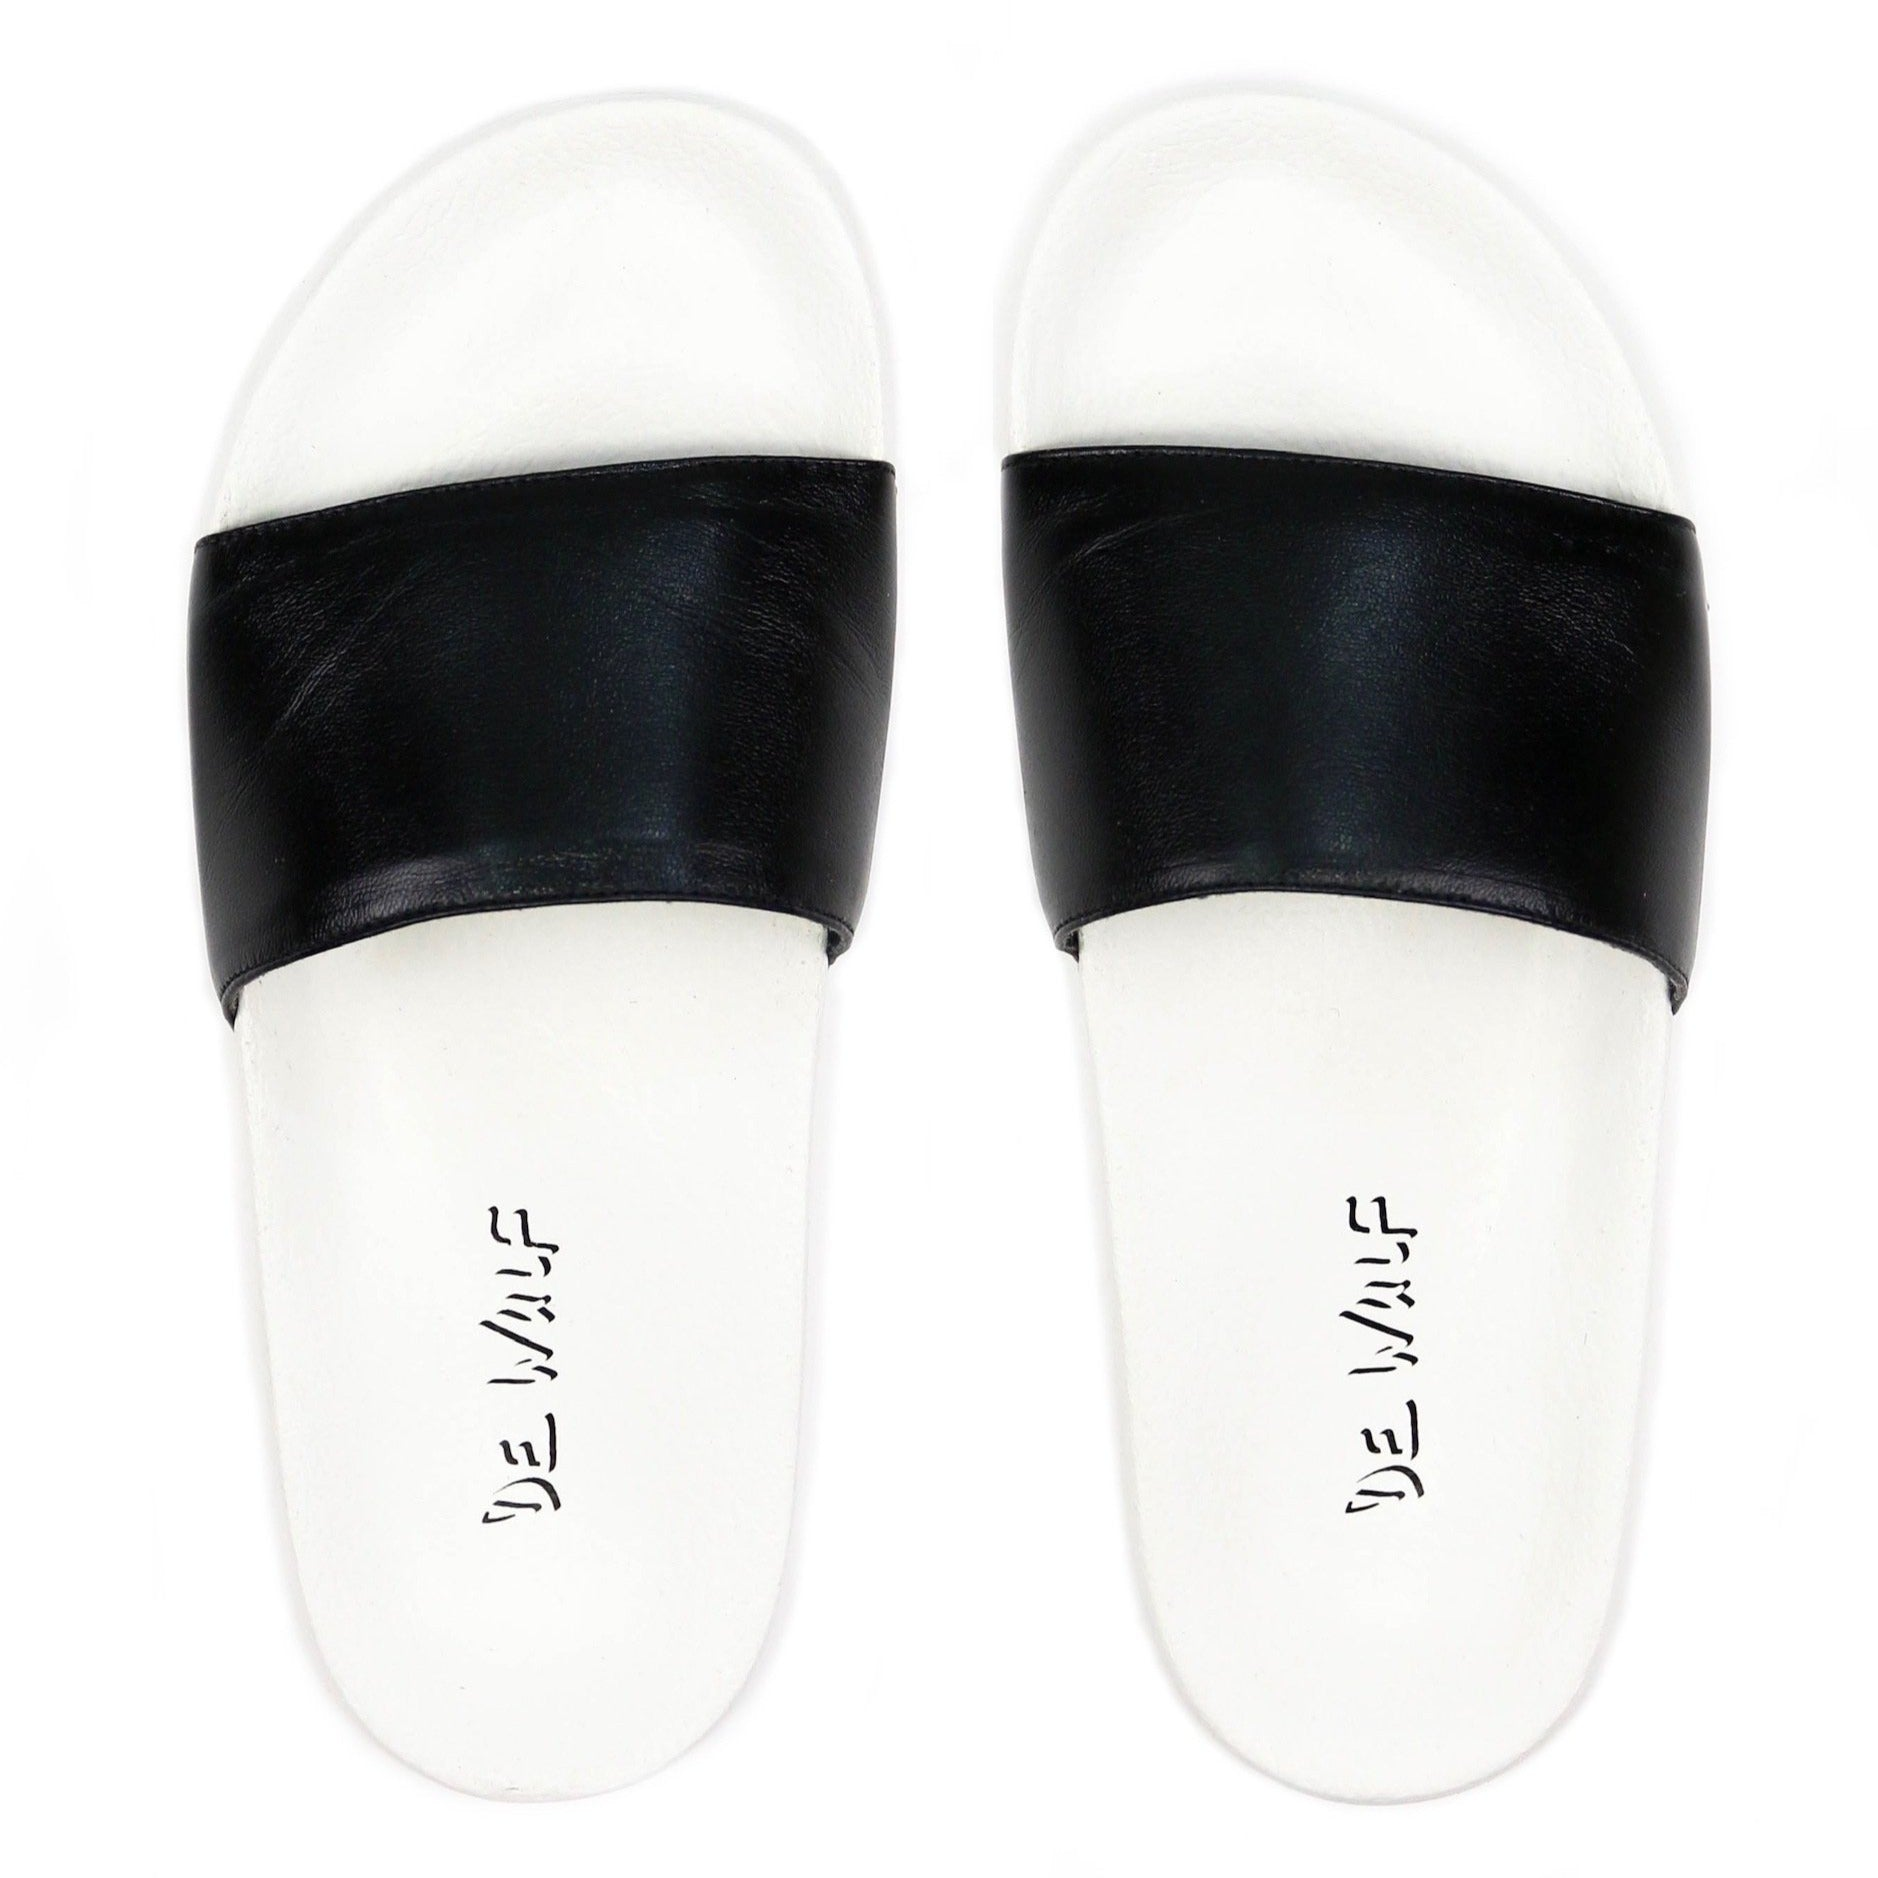 Men slides, men black slides, de wulf footwear, de wulf shoes, summer slides, comfortable shoes, men shoes, men summer shoes, flip flops, men flip flops